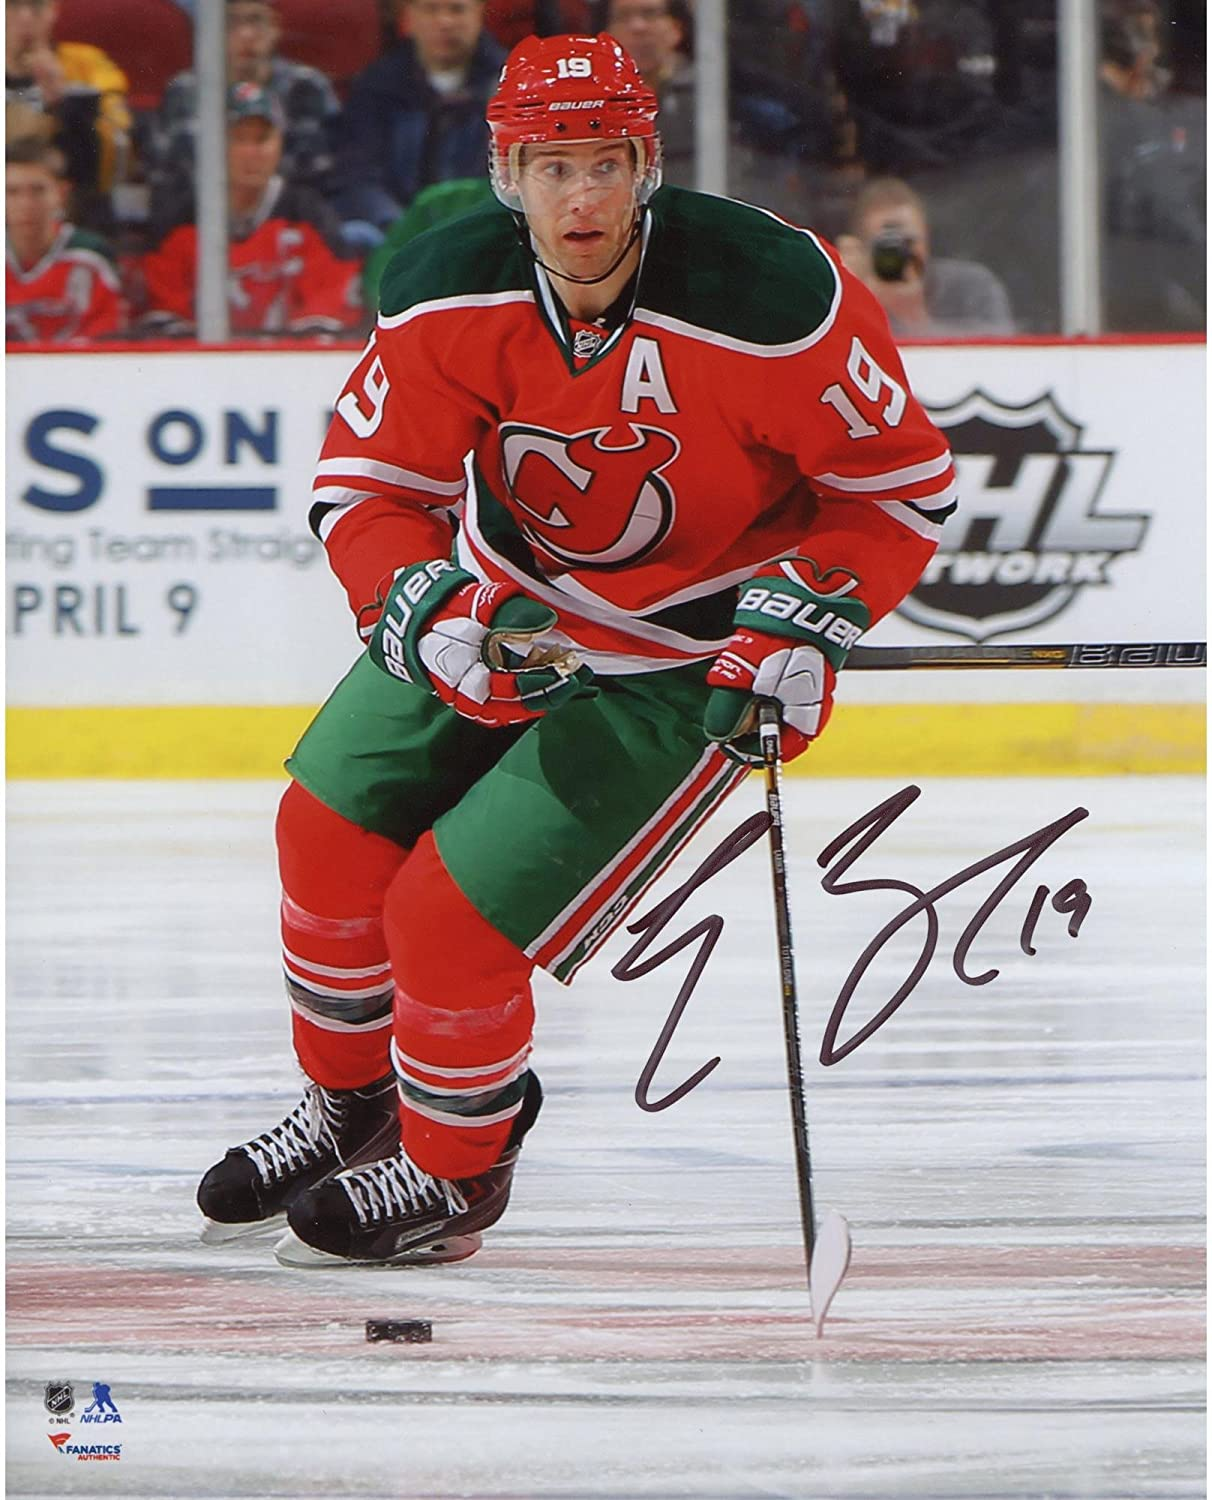 e8c3fe2a3 Travis Zajac New Jersey Devils Autographed Red Jersey with Green Pants 8